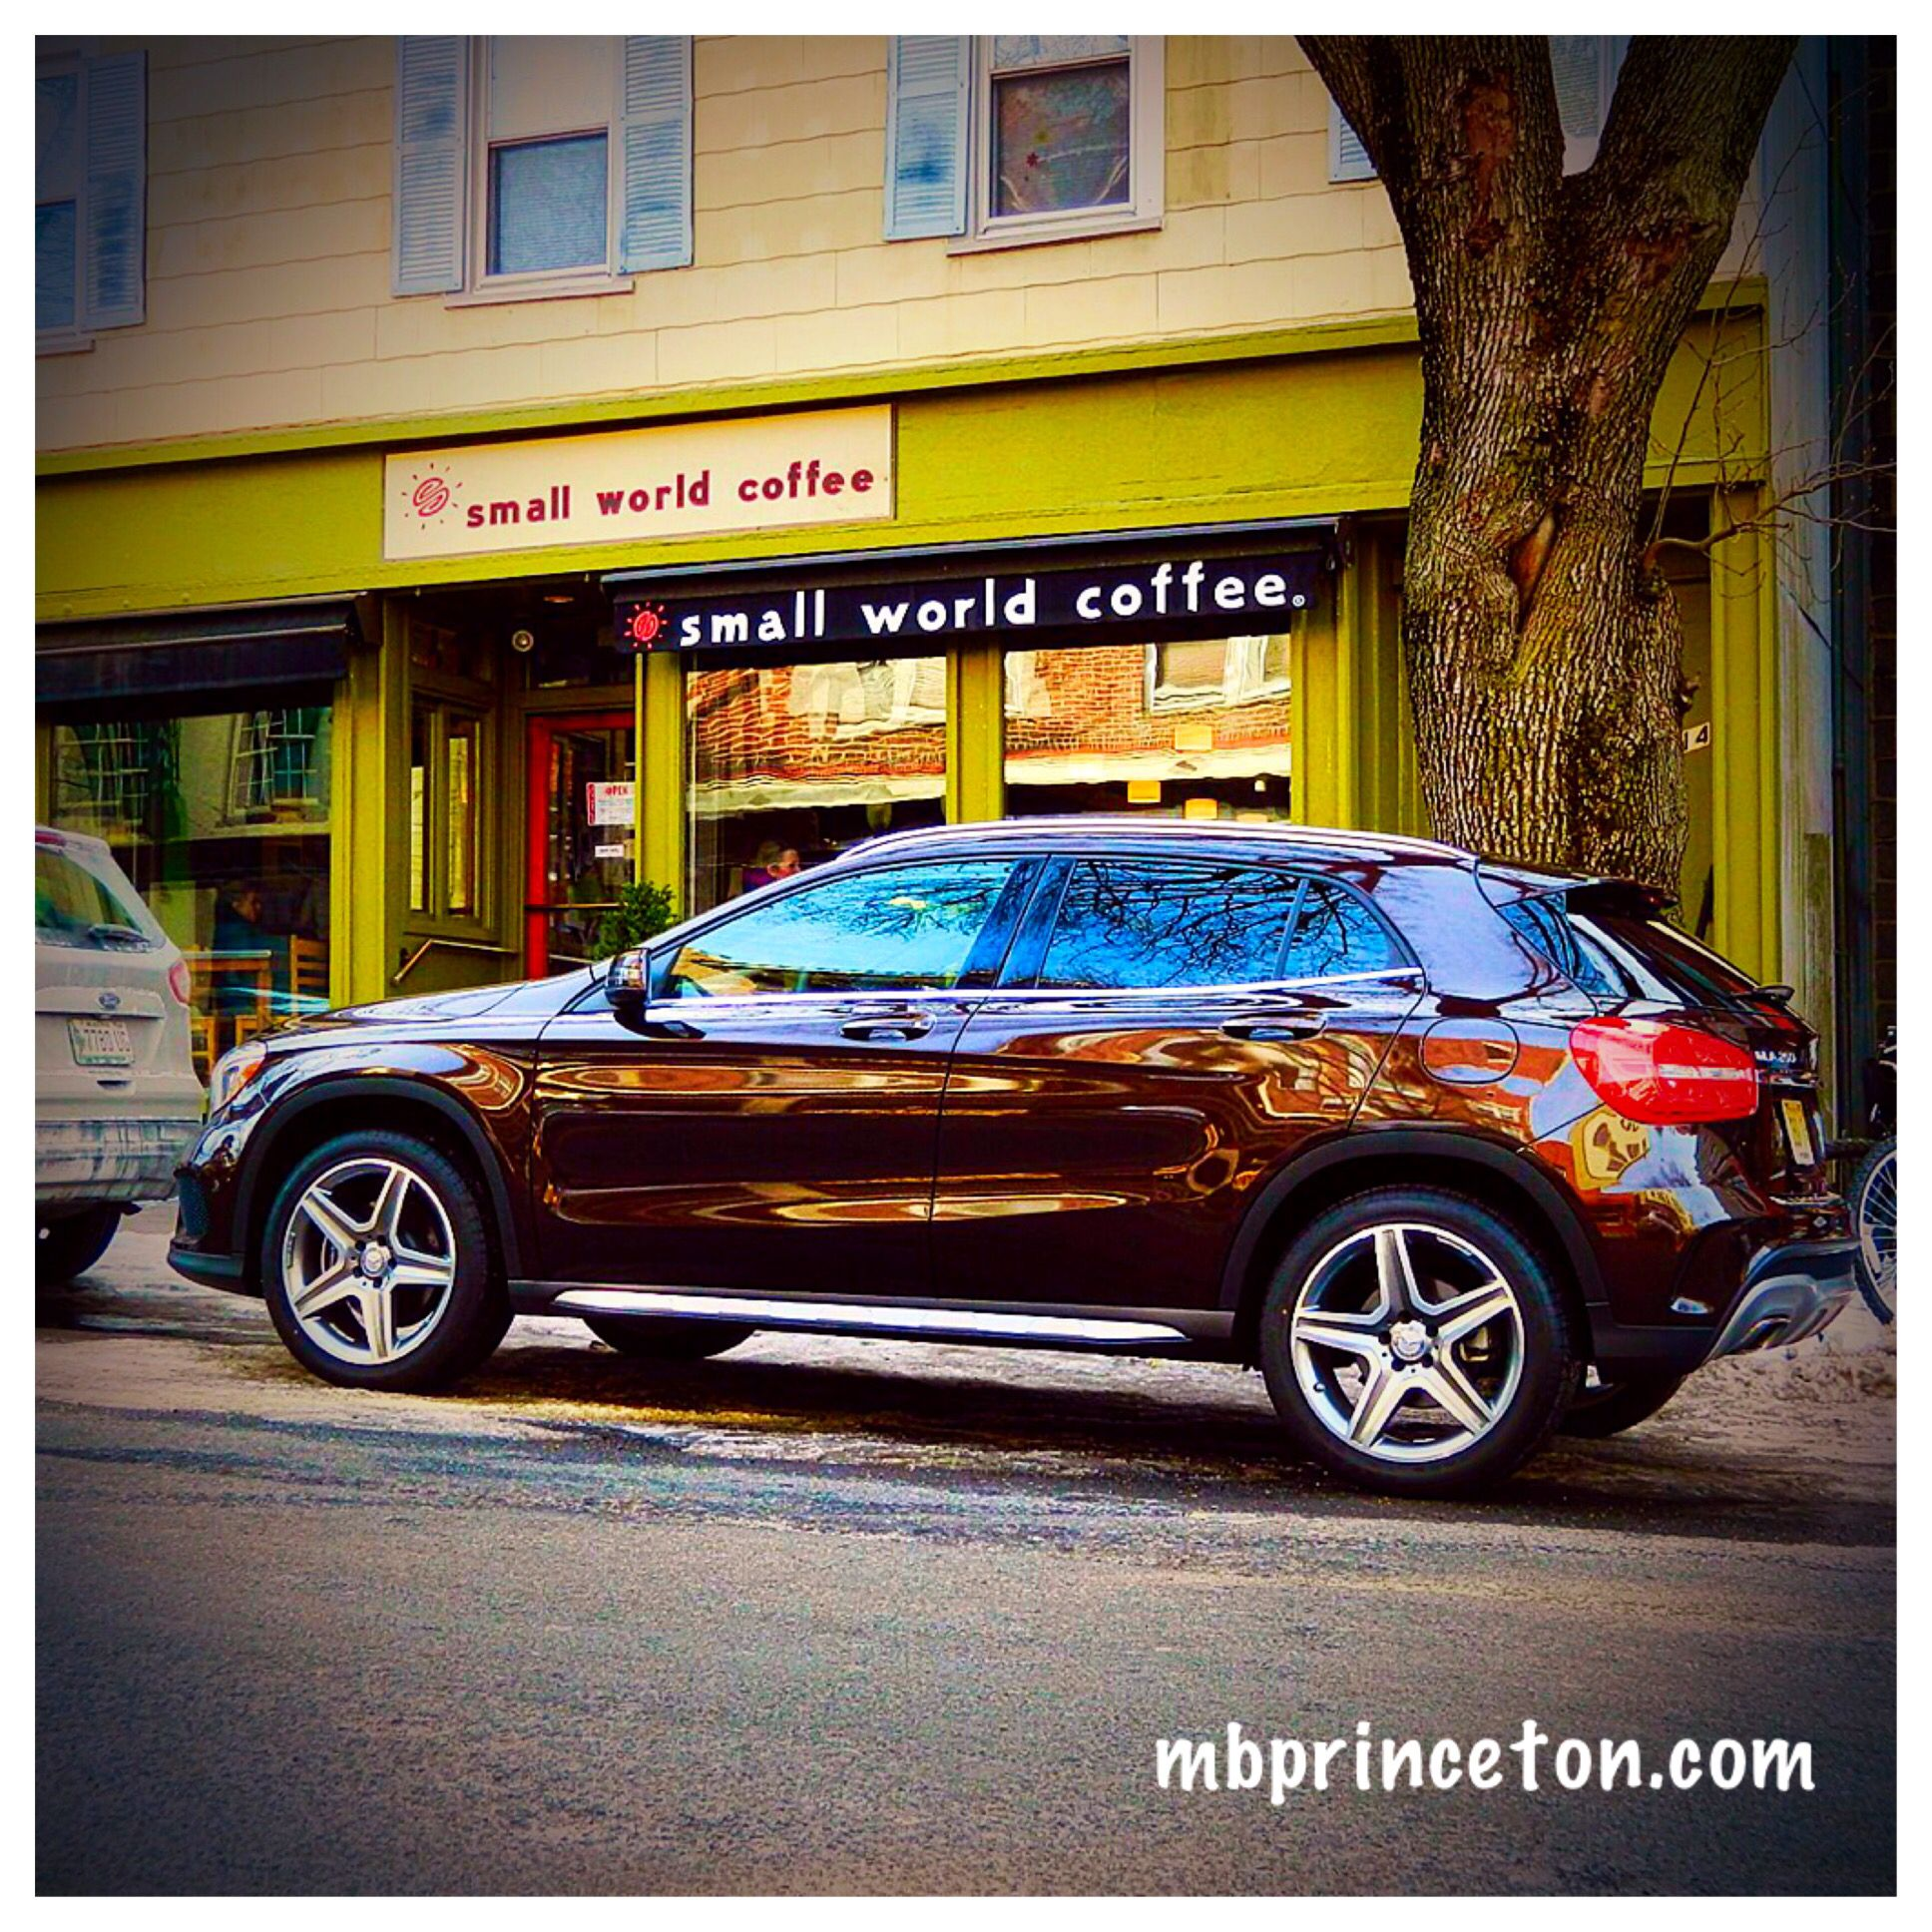 2015 Mercedes-Benz GLA250 in front of Small World Coffee ...